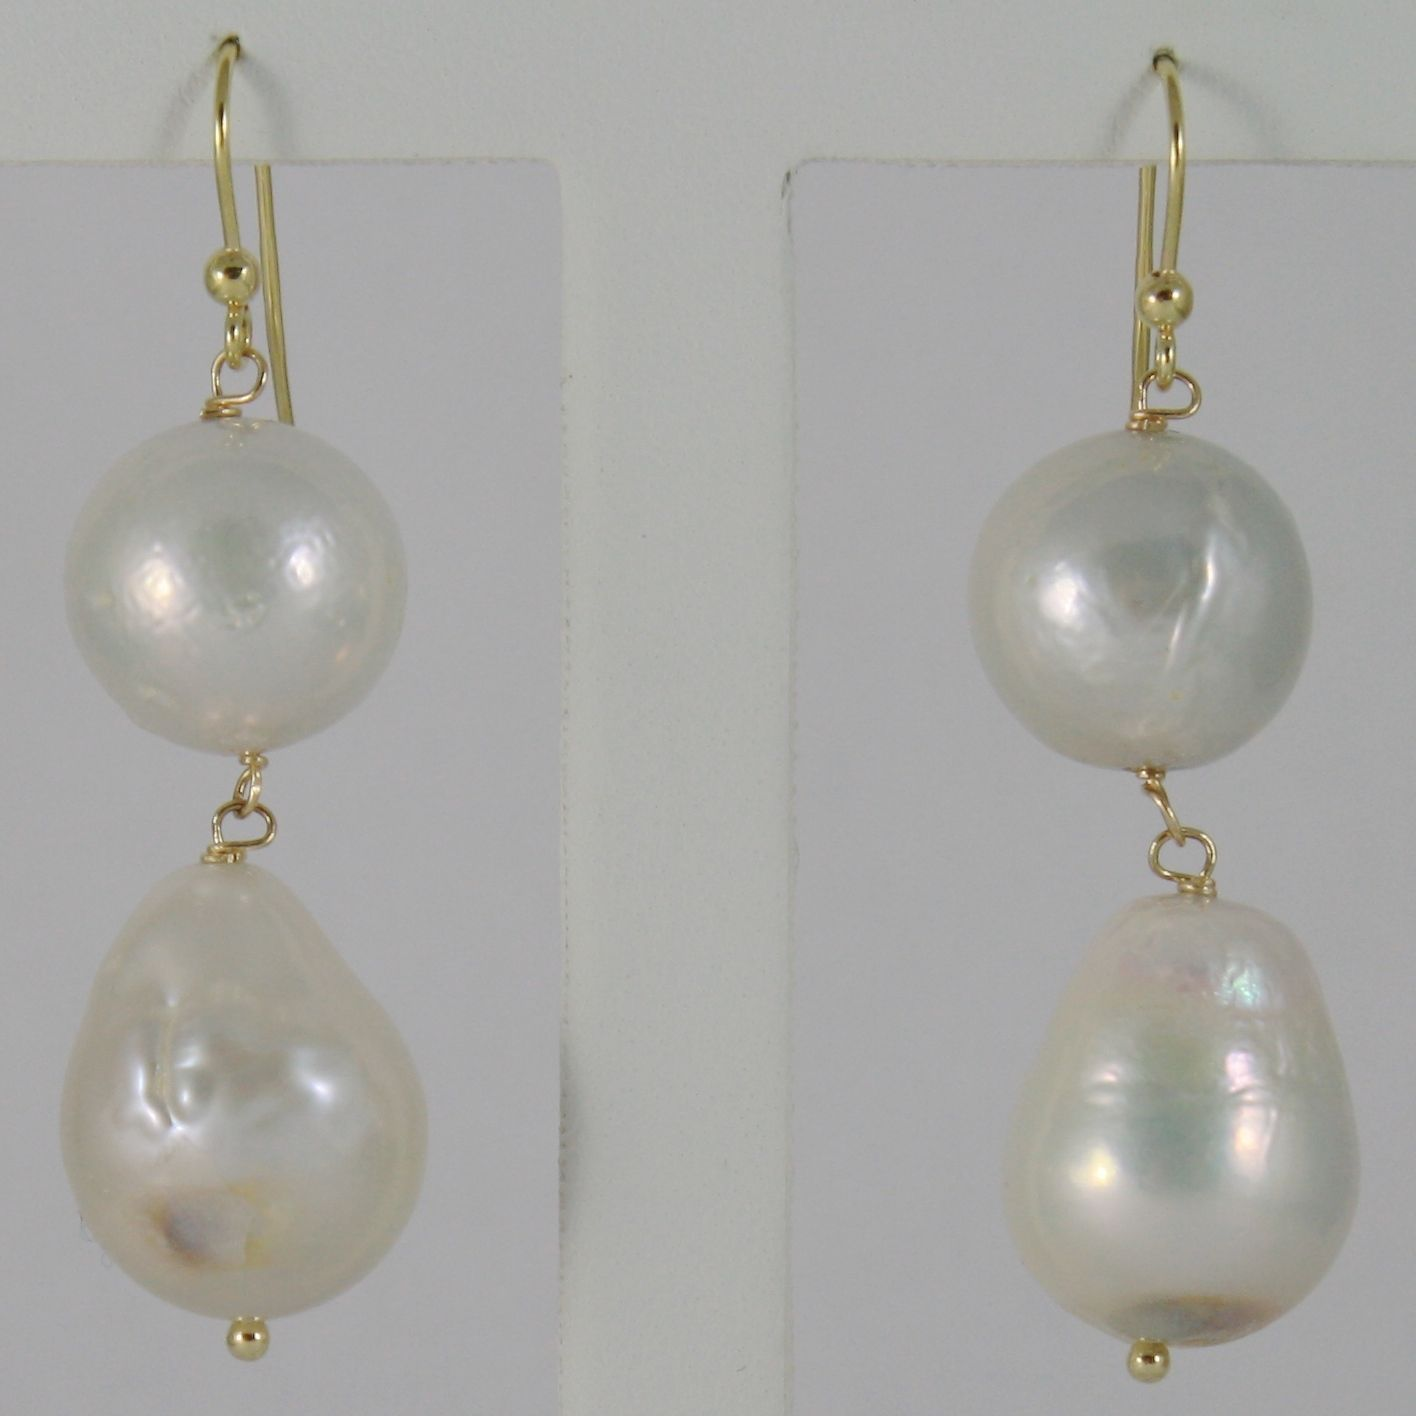 18K YELLOW GOLD PENDANT EARRINGS WITH BIG 13-20 MM WHITE FW ROUND & DROP PEARLS